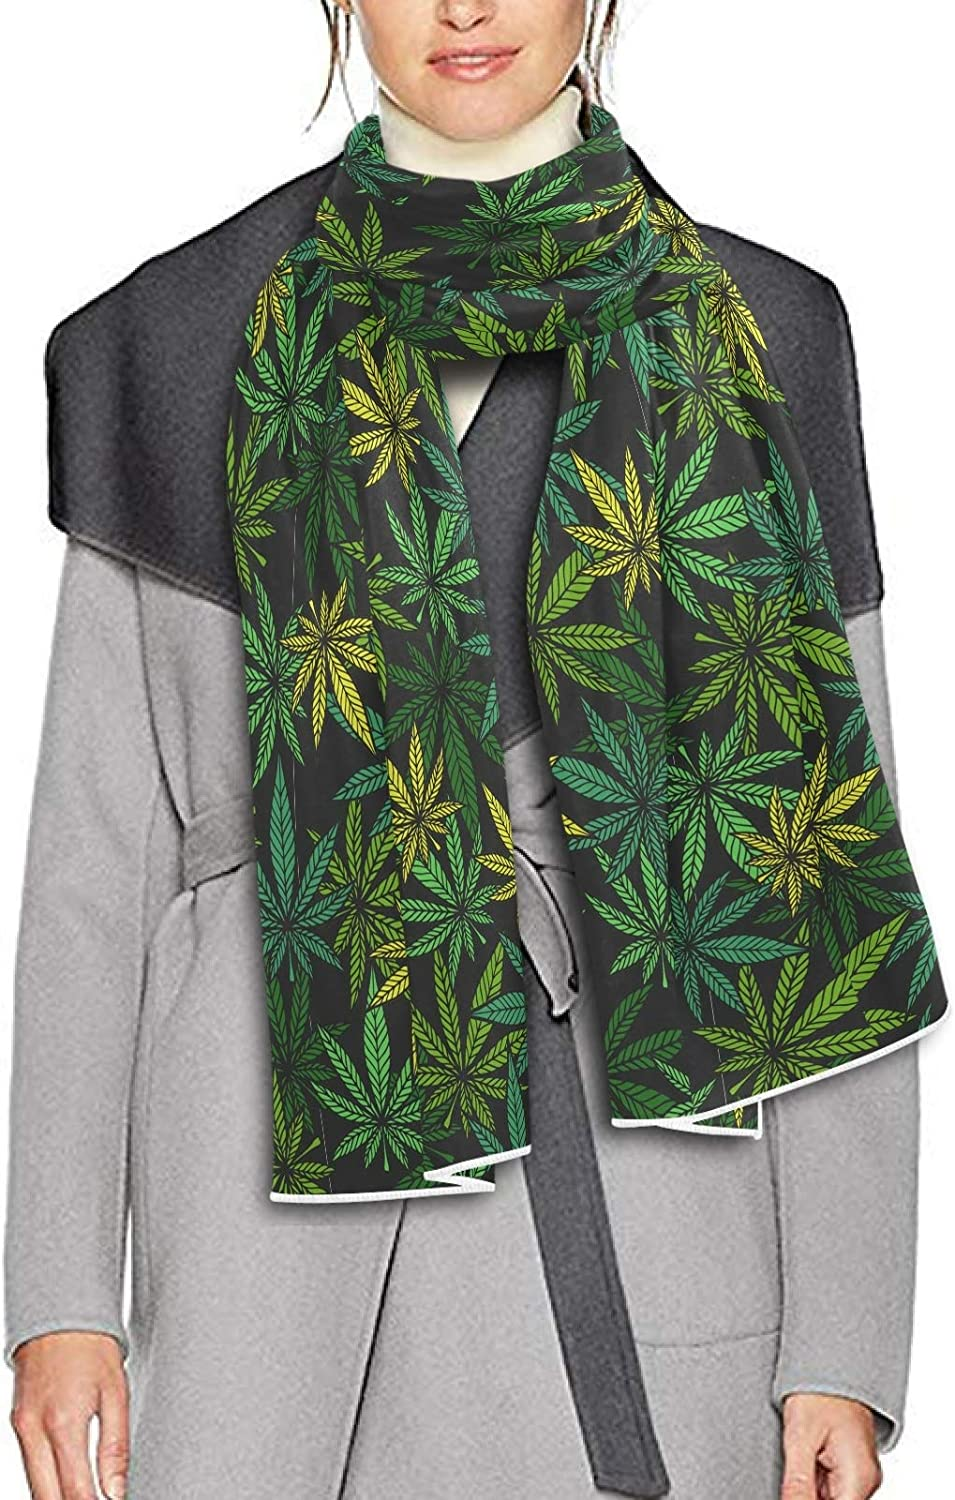 Scarf for Women and Men Marijuana Leaf Green Shawls Blanket Scarf wraps Thick Soft Winter Oversized Scarf Lightweight